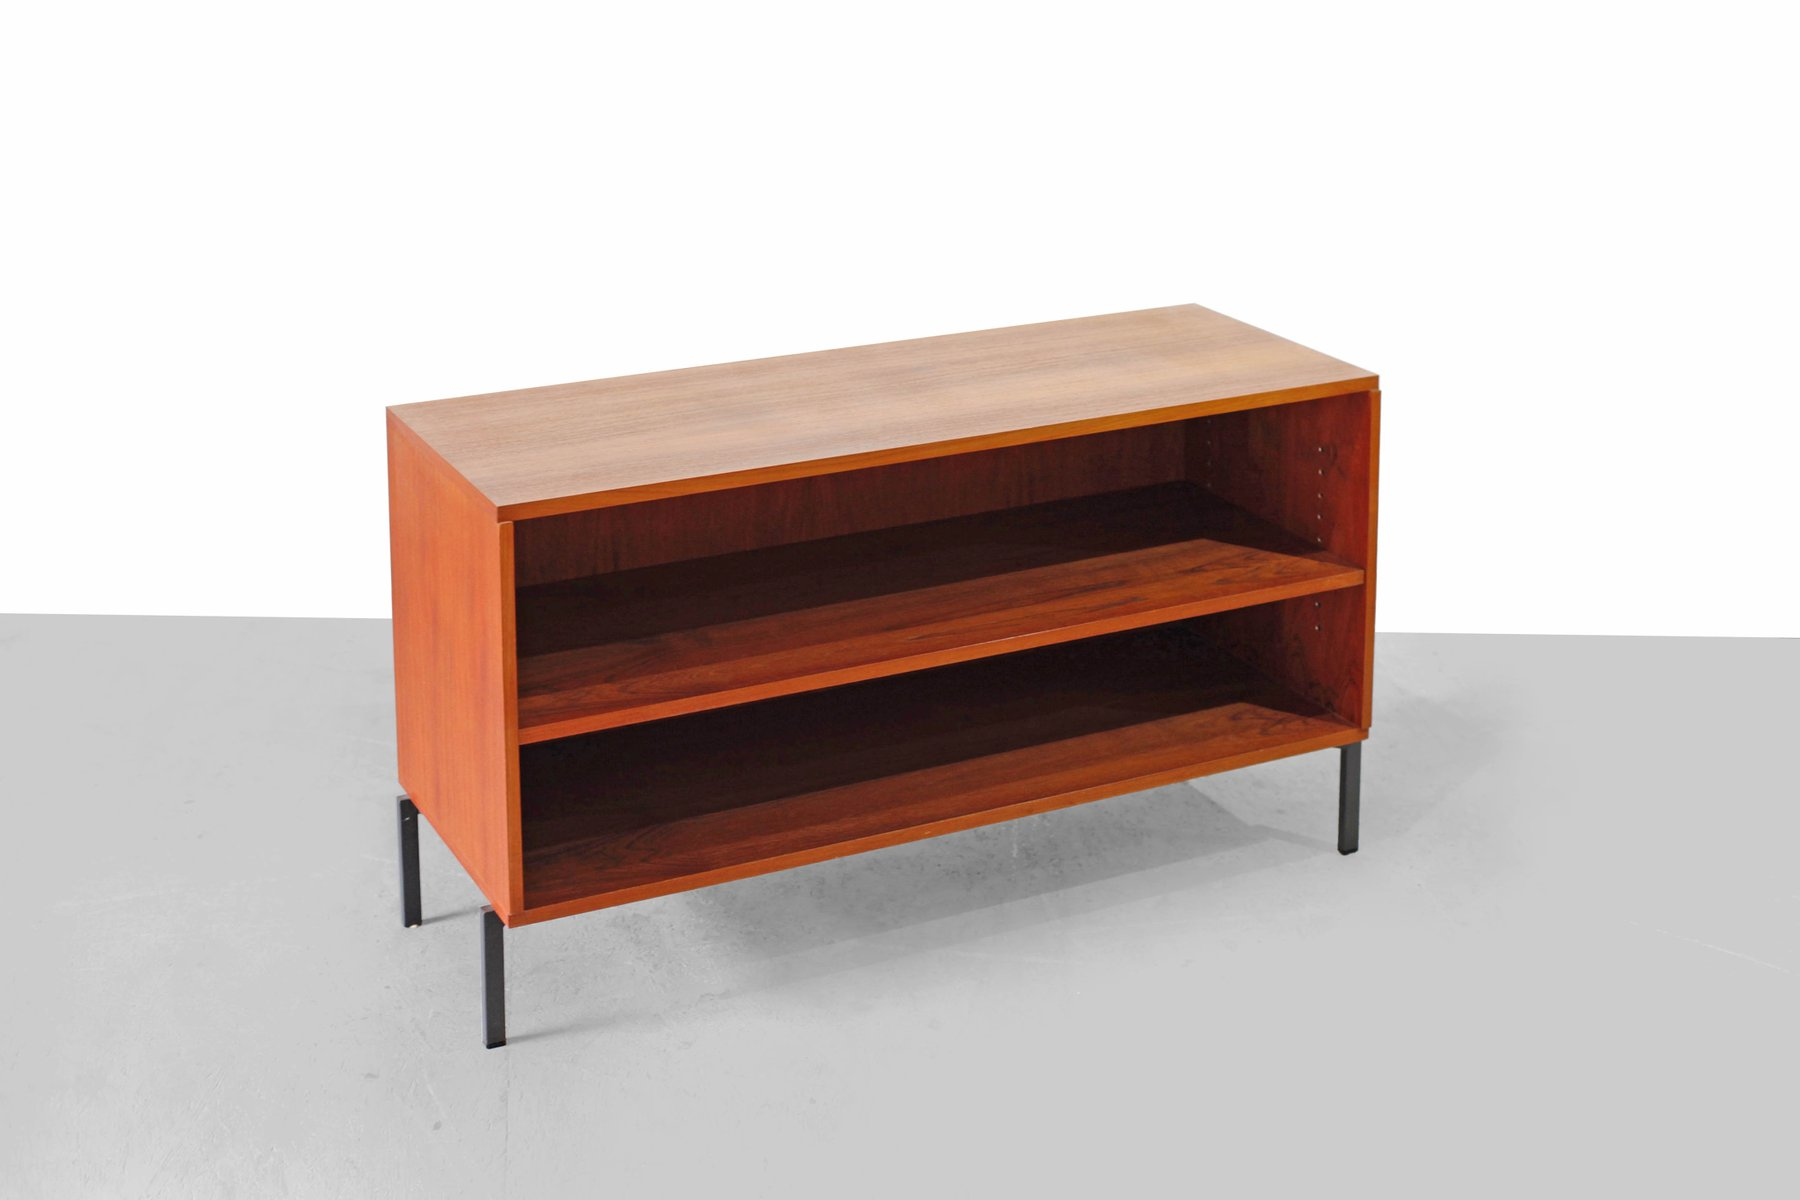 Teak sideboard by herbert hirche for holz pfel 1950s for for Sideboard 4 meter lang